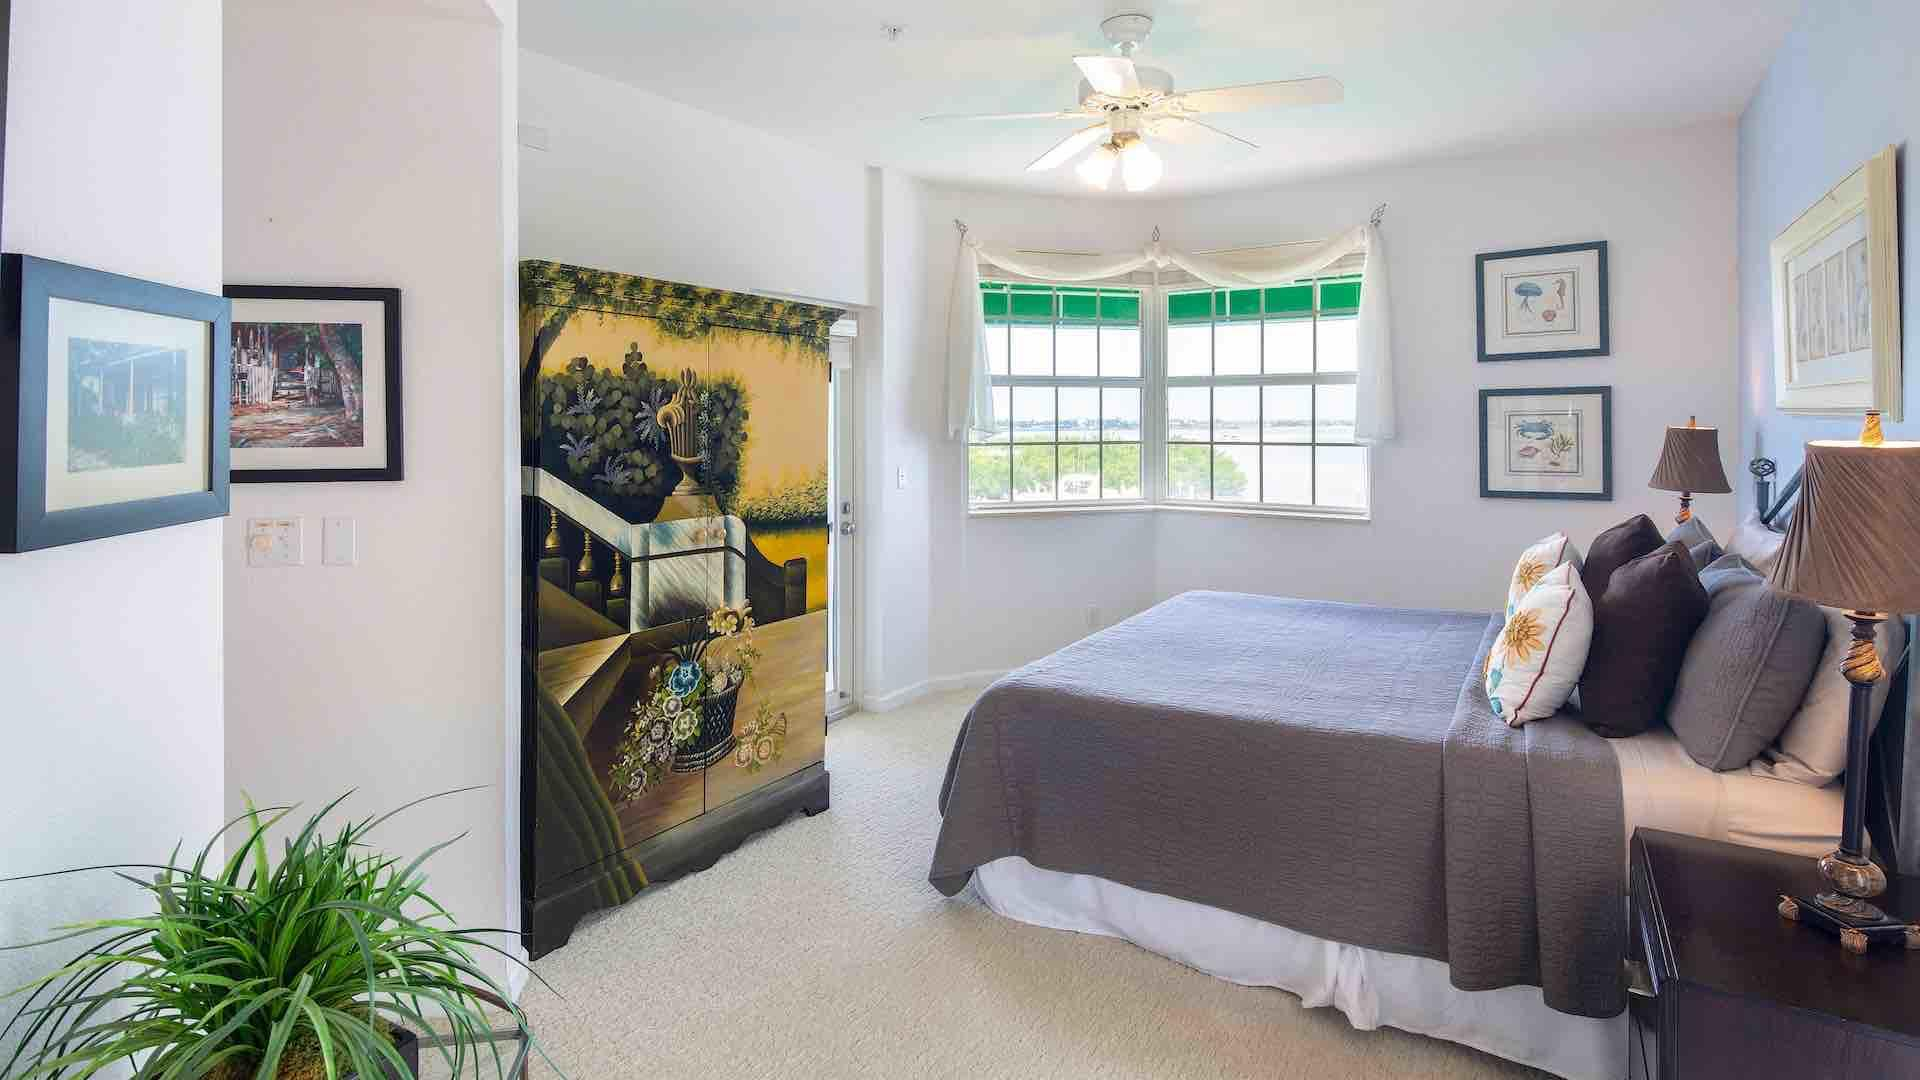 The master bedroom has an overhead fan and a large armoire with a flat screen TV...